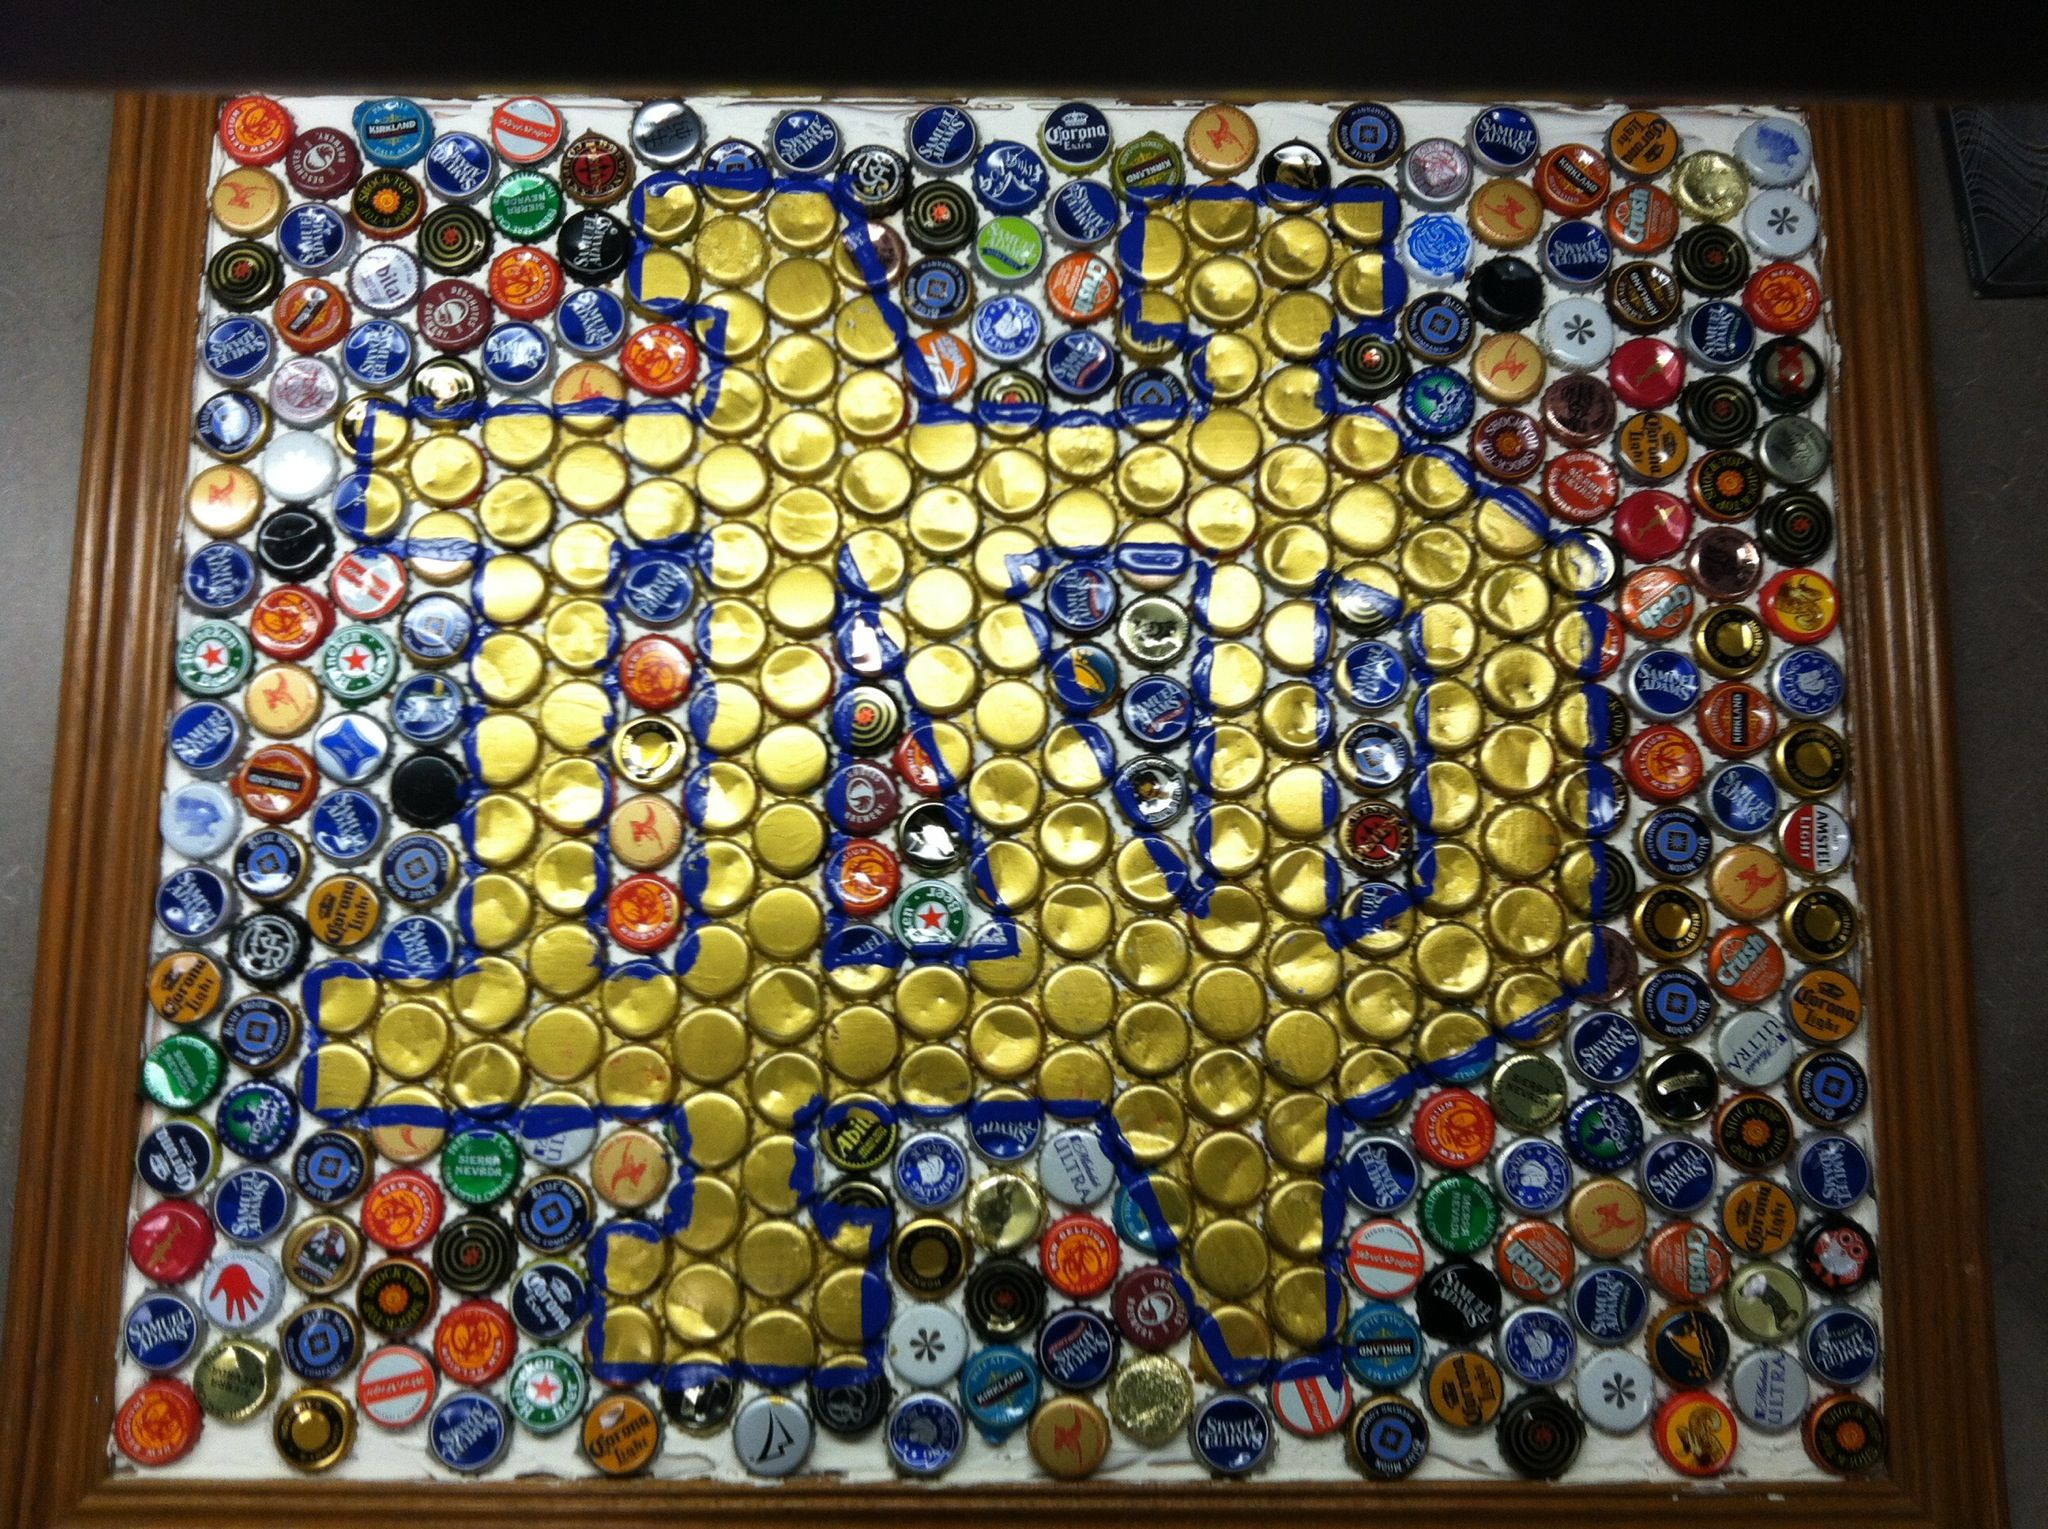 Bottle Cap Wall Art notre dame logo bottle cap wall artcrystal.pistol.designs